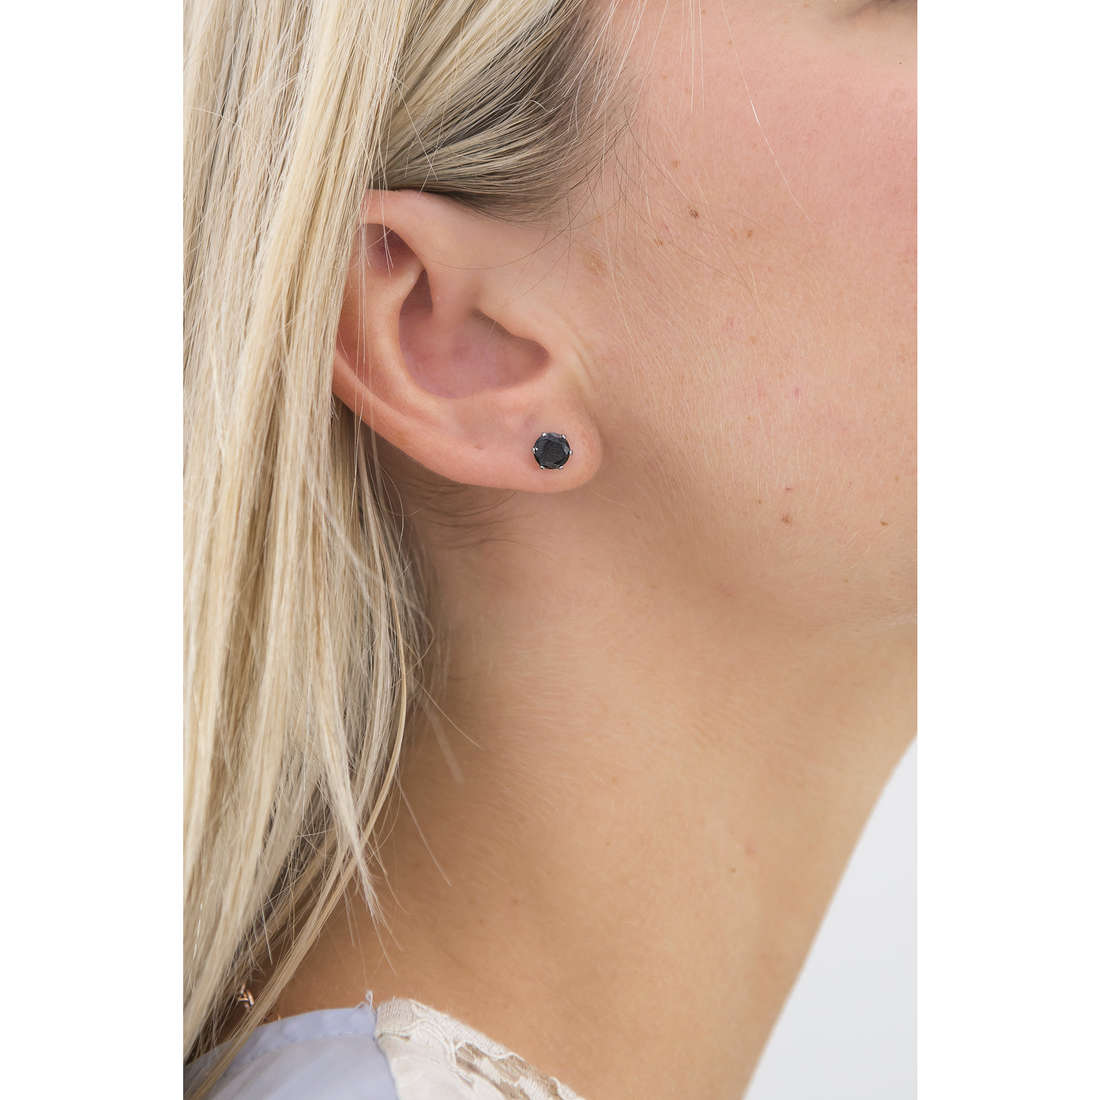 Marlù boucles d'oreille Riflessi femme 5OR0041N-6 indosso